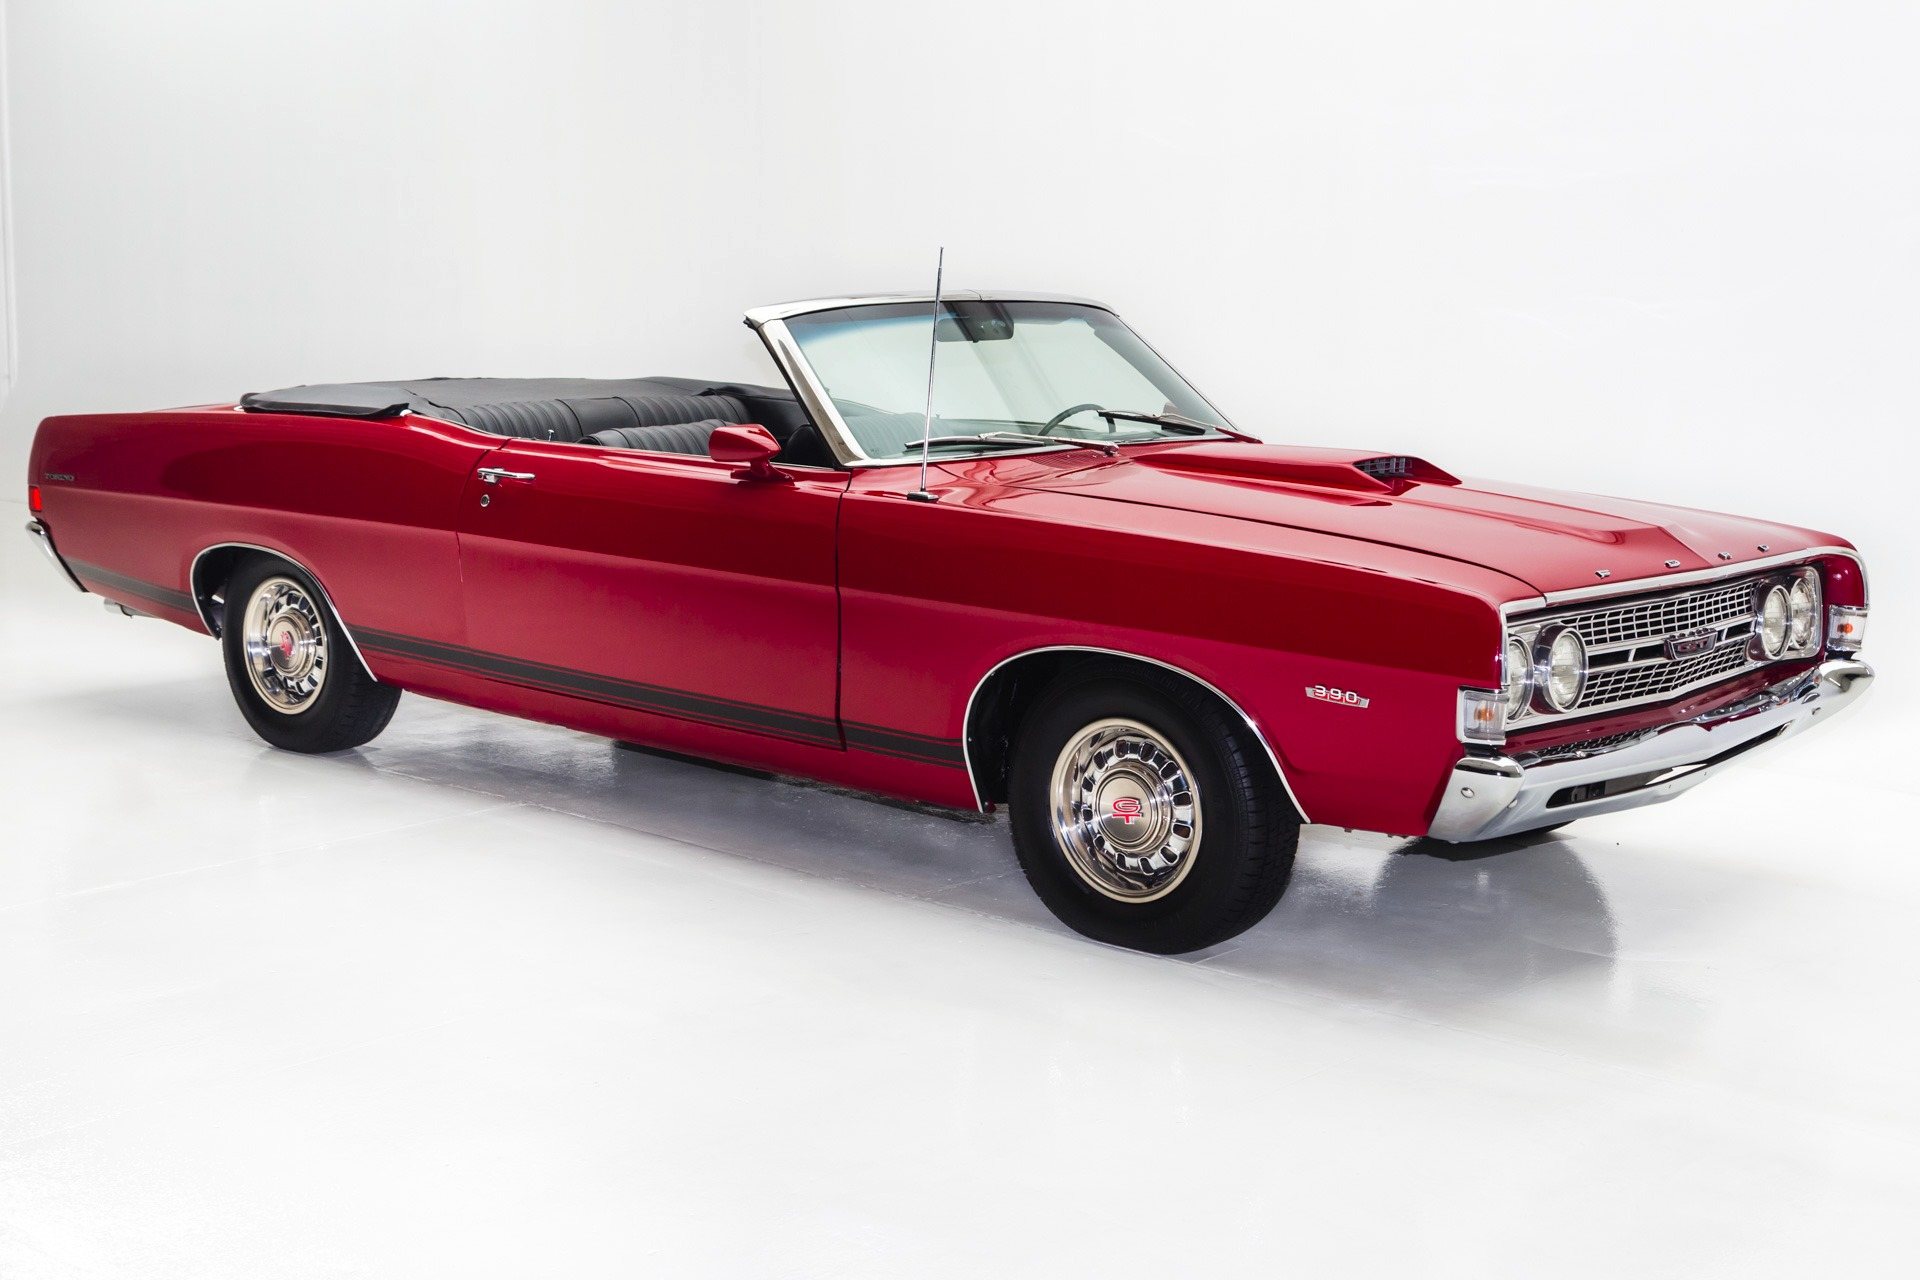 Used Cars Des Moines >> 1968 Ford Torino S Code 390 GT 4-Speed